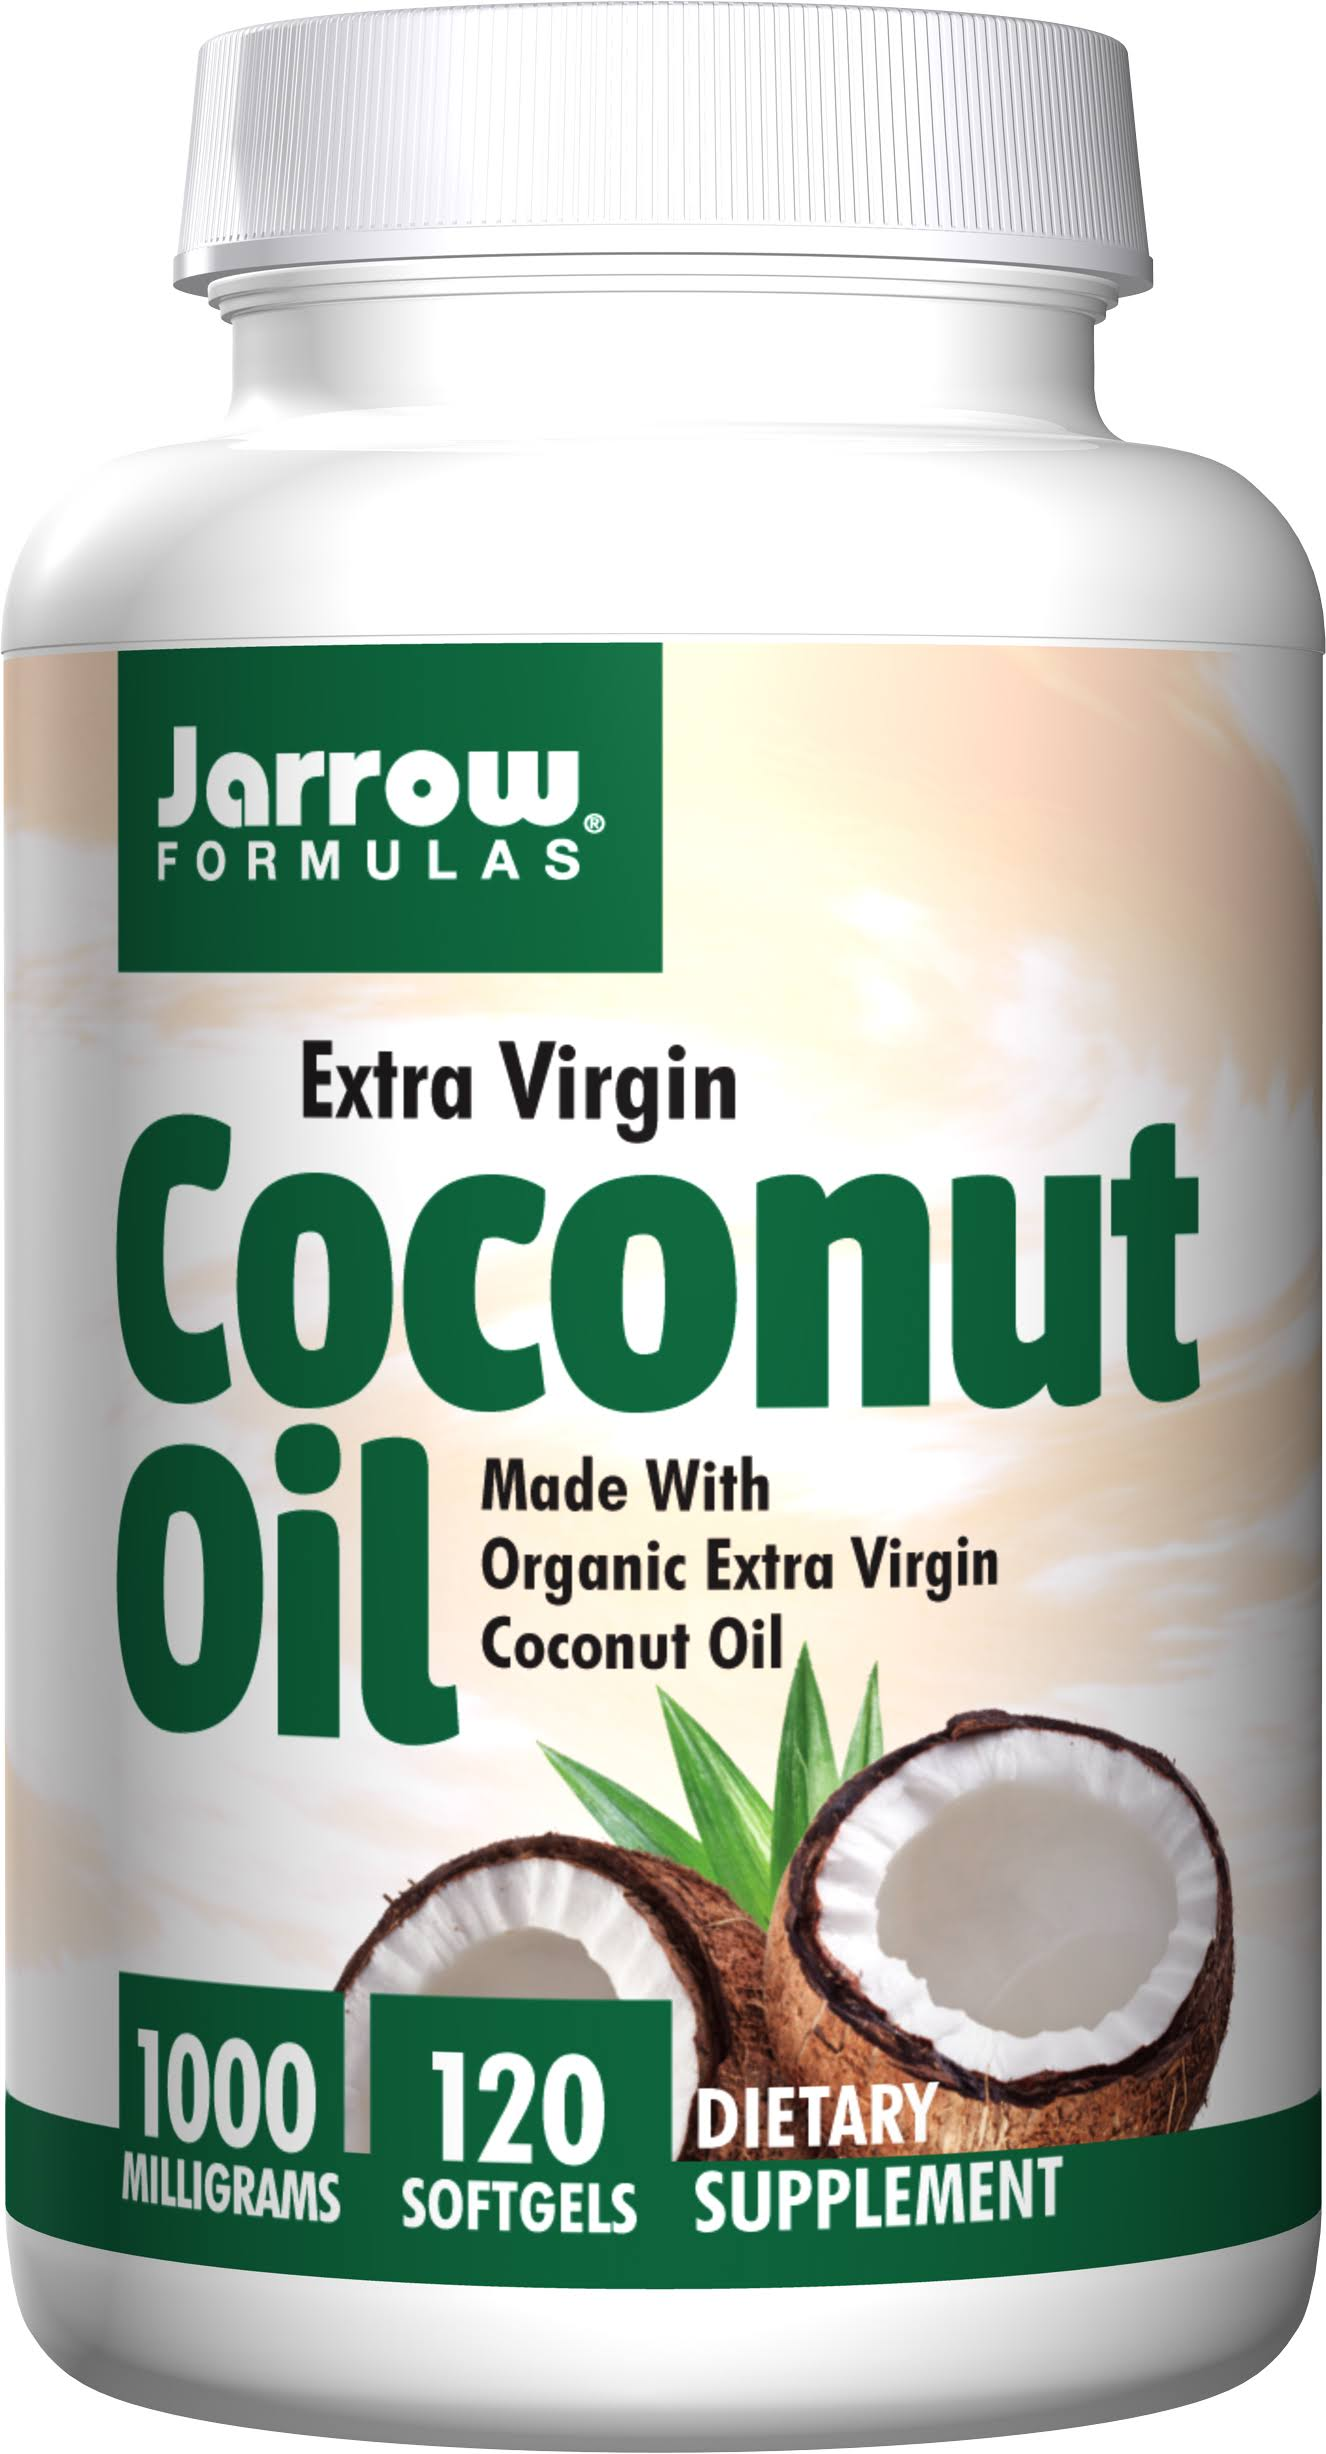 Jarrow Formulas Extra Virgin Coconut - 1000mg, 120 Softgels